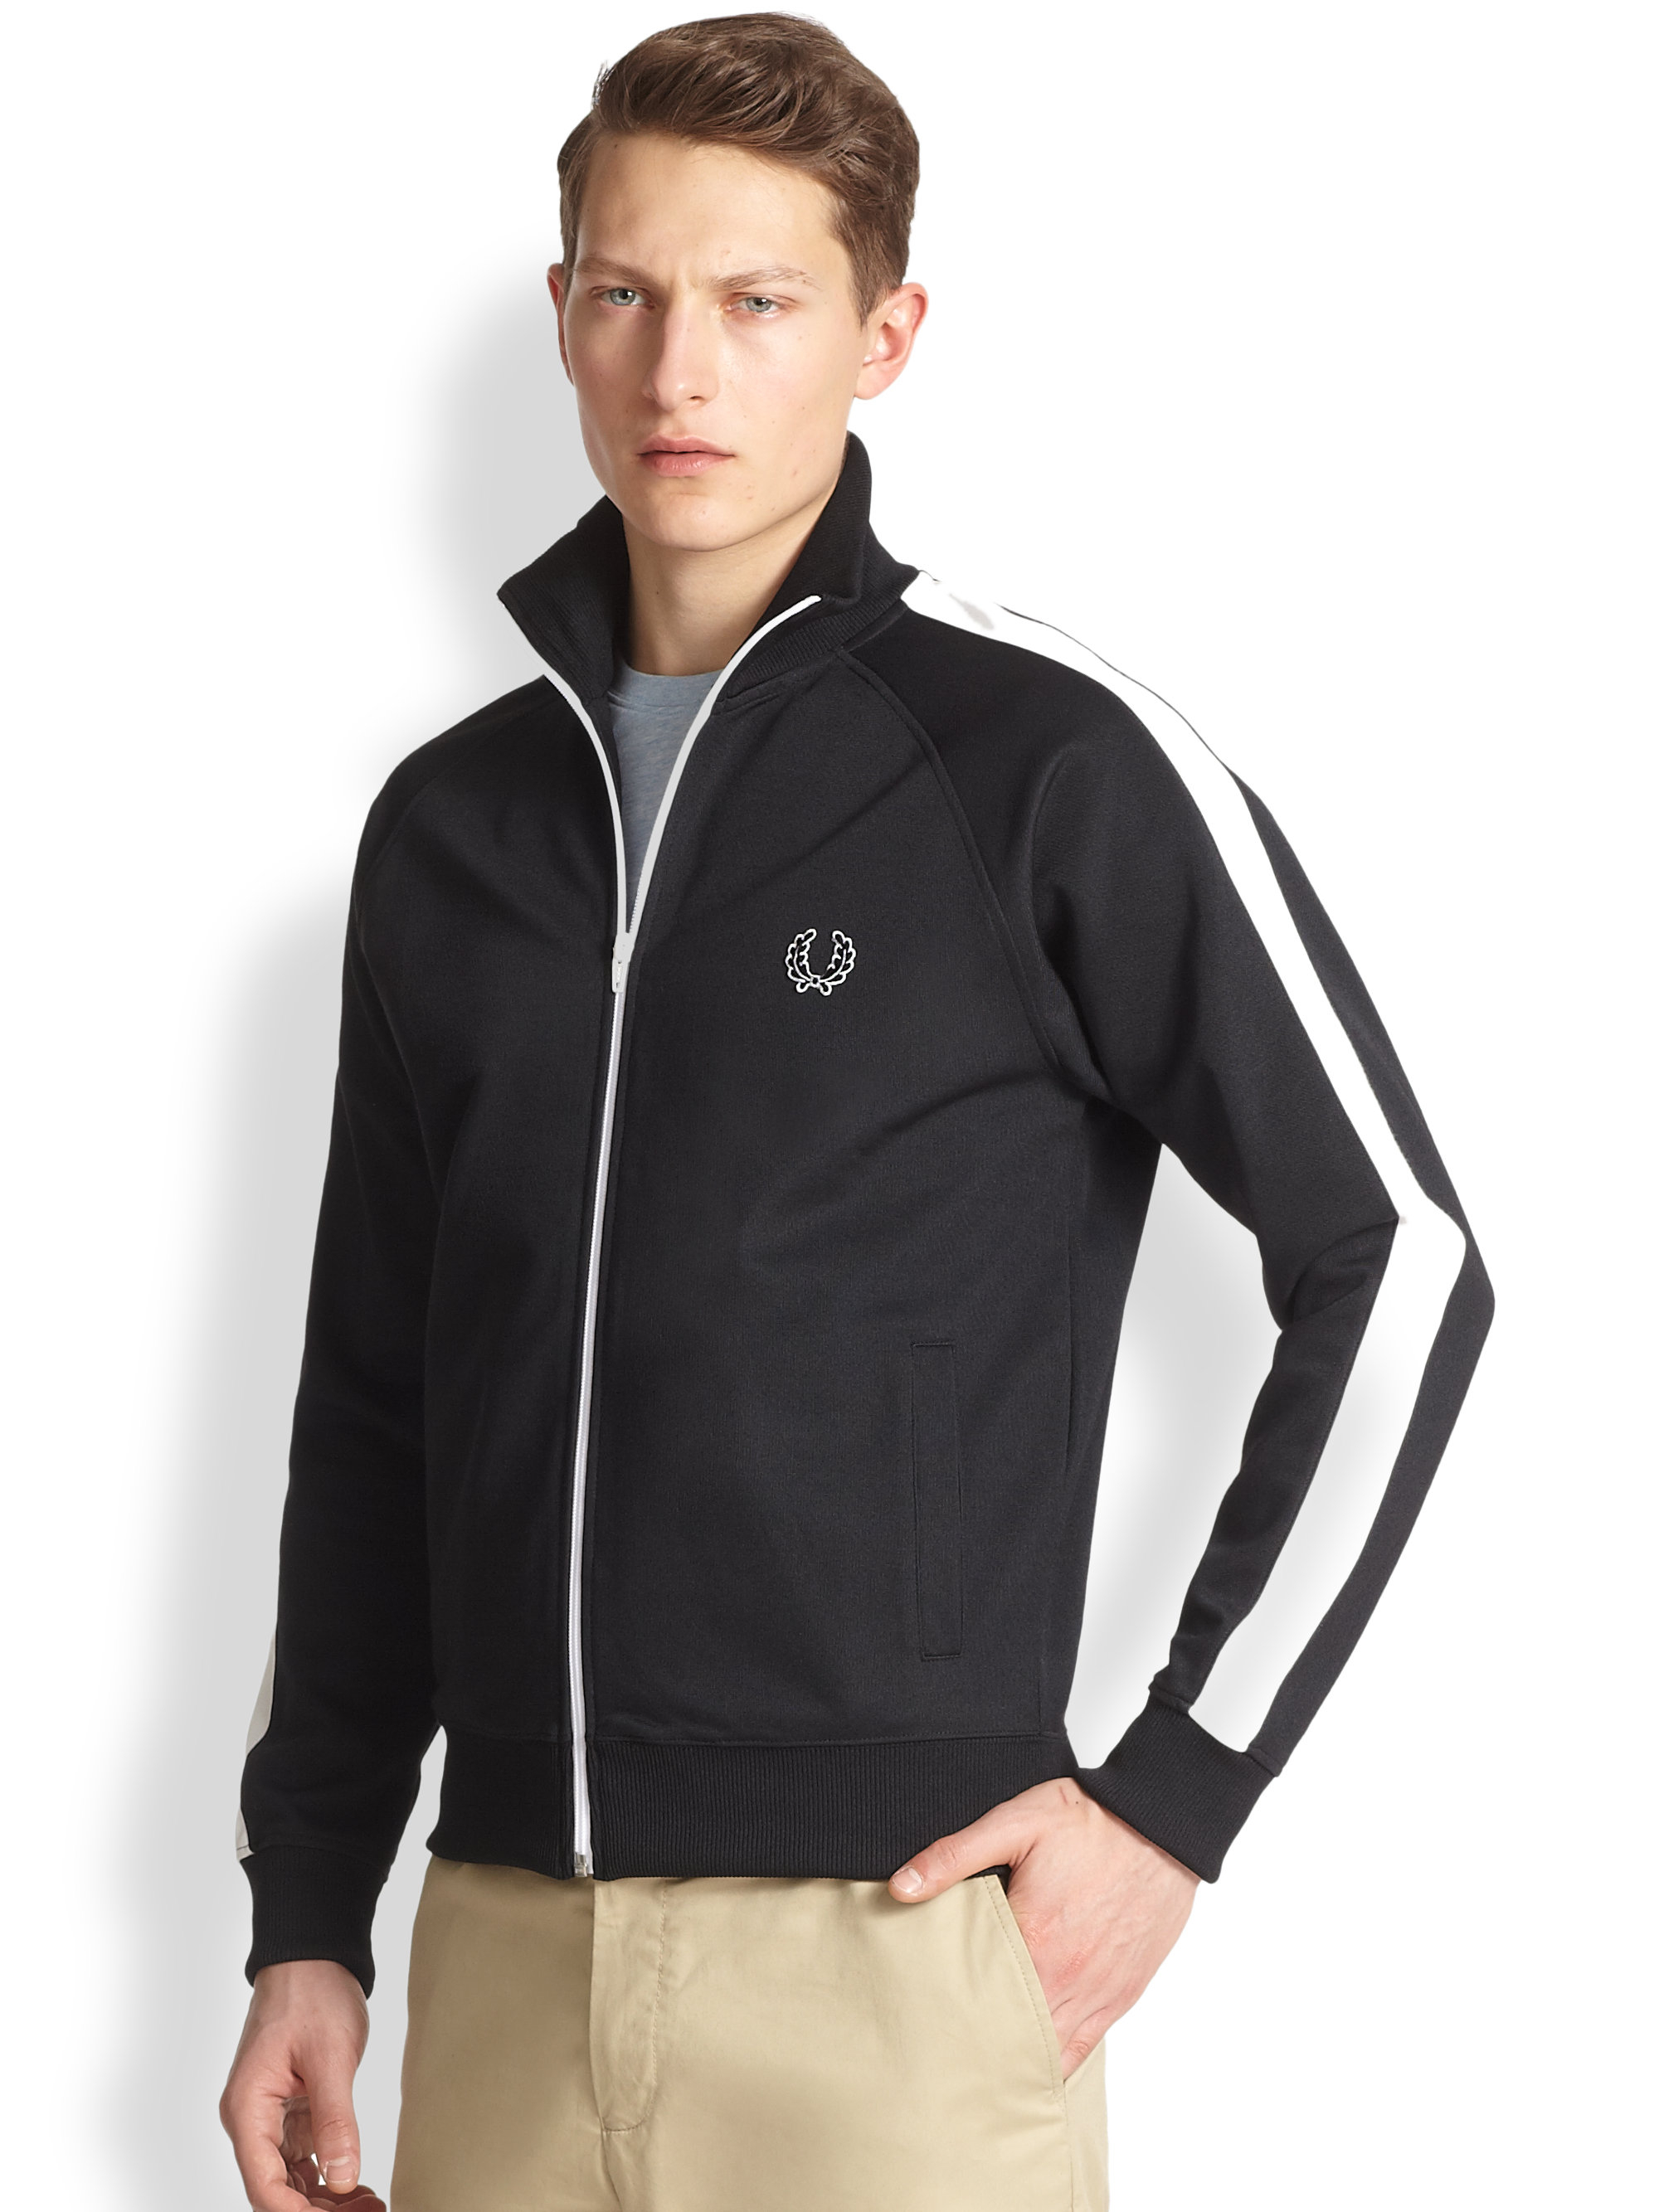 fred perry classic track jacket in black for men lyst. Black Bedroom Furniture Sets. Home Design Ideas